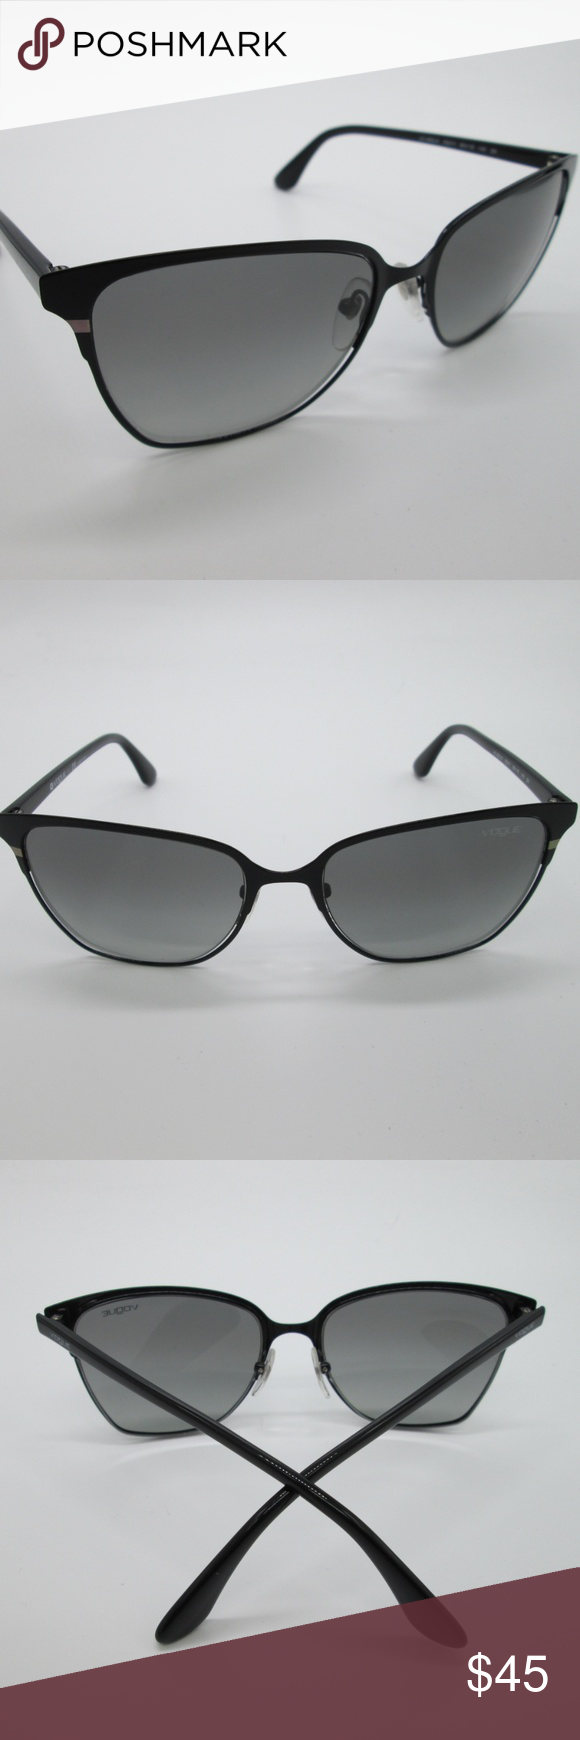 90a26f8d77 Vogue VO3962-S Men s Sunglasses DAL305 Vogue VO3962-S Men s Sunglasses DAL305  Frame and temples in Excellent condition. Lenses in very good condition.